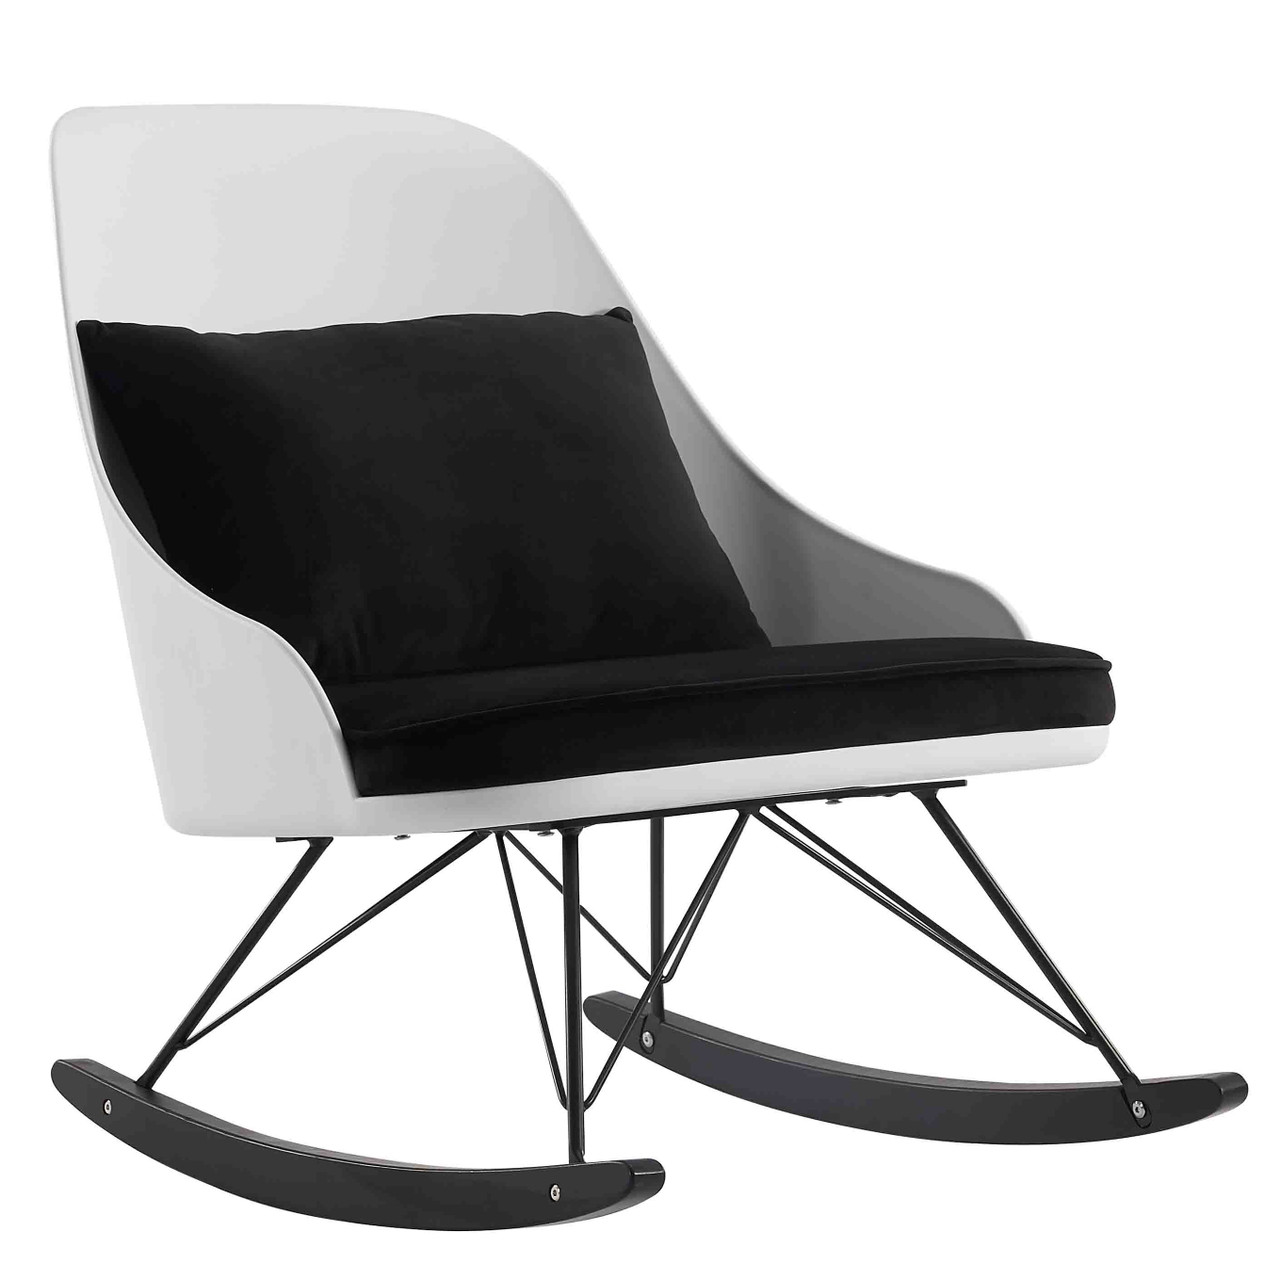 White Modern Large Rocking Chair With Cushion   2xhome   Modern And  Contemporary Furniture